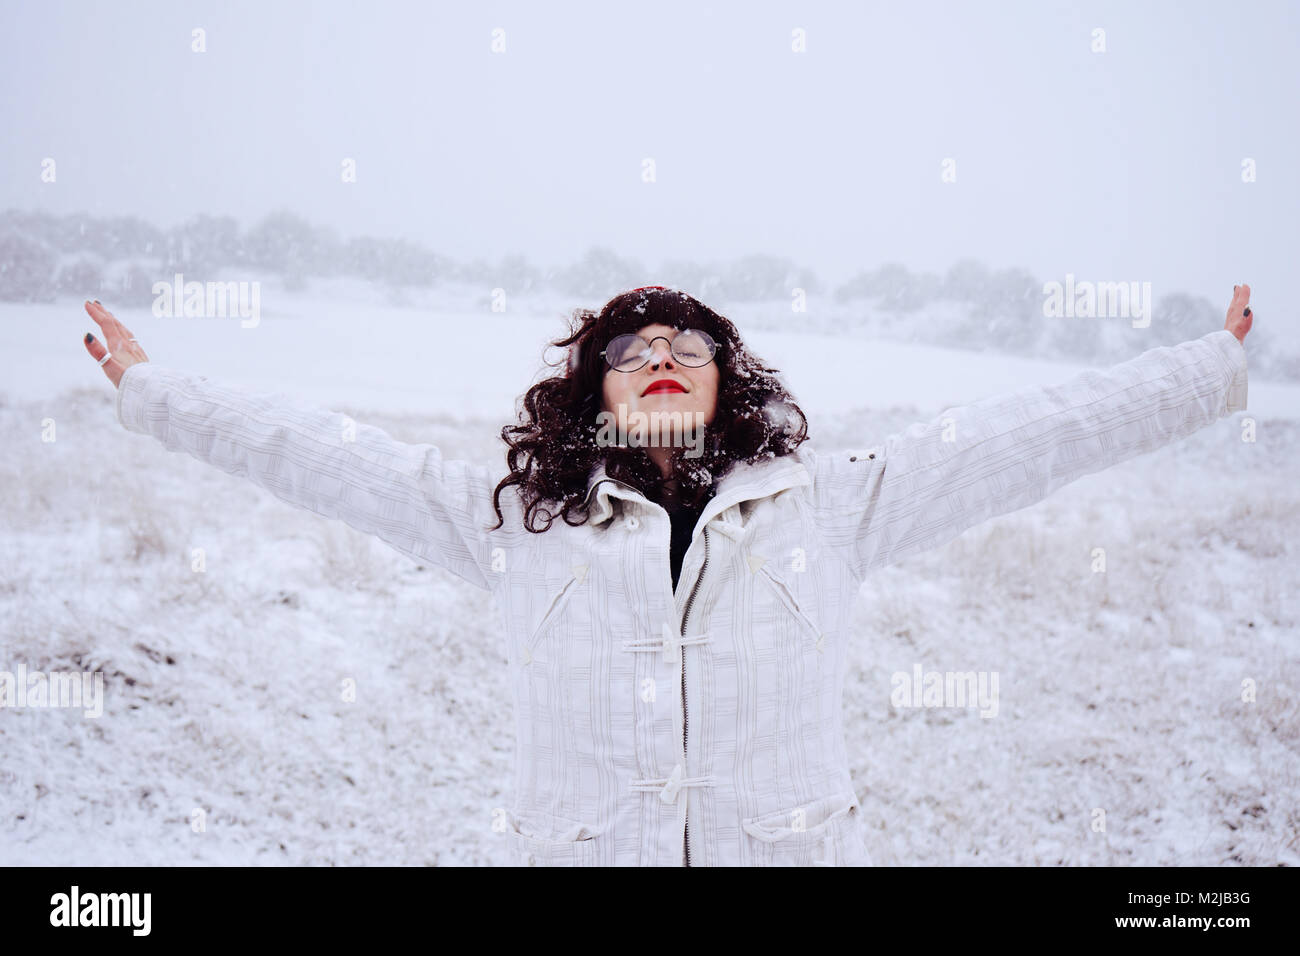 Young cute woman enjoying a snowy day Stock Photo